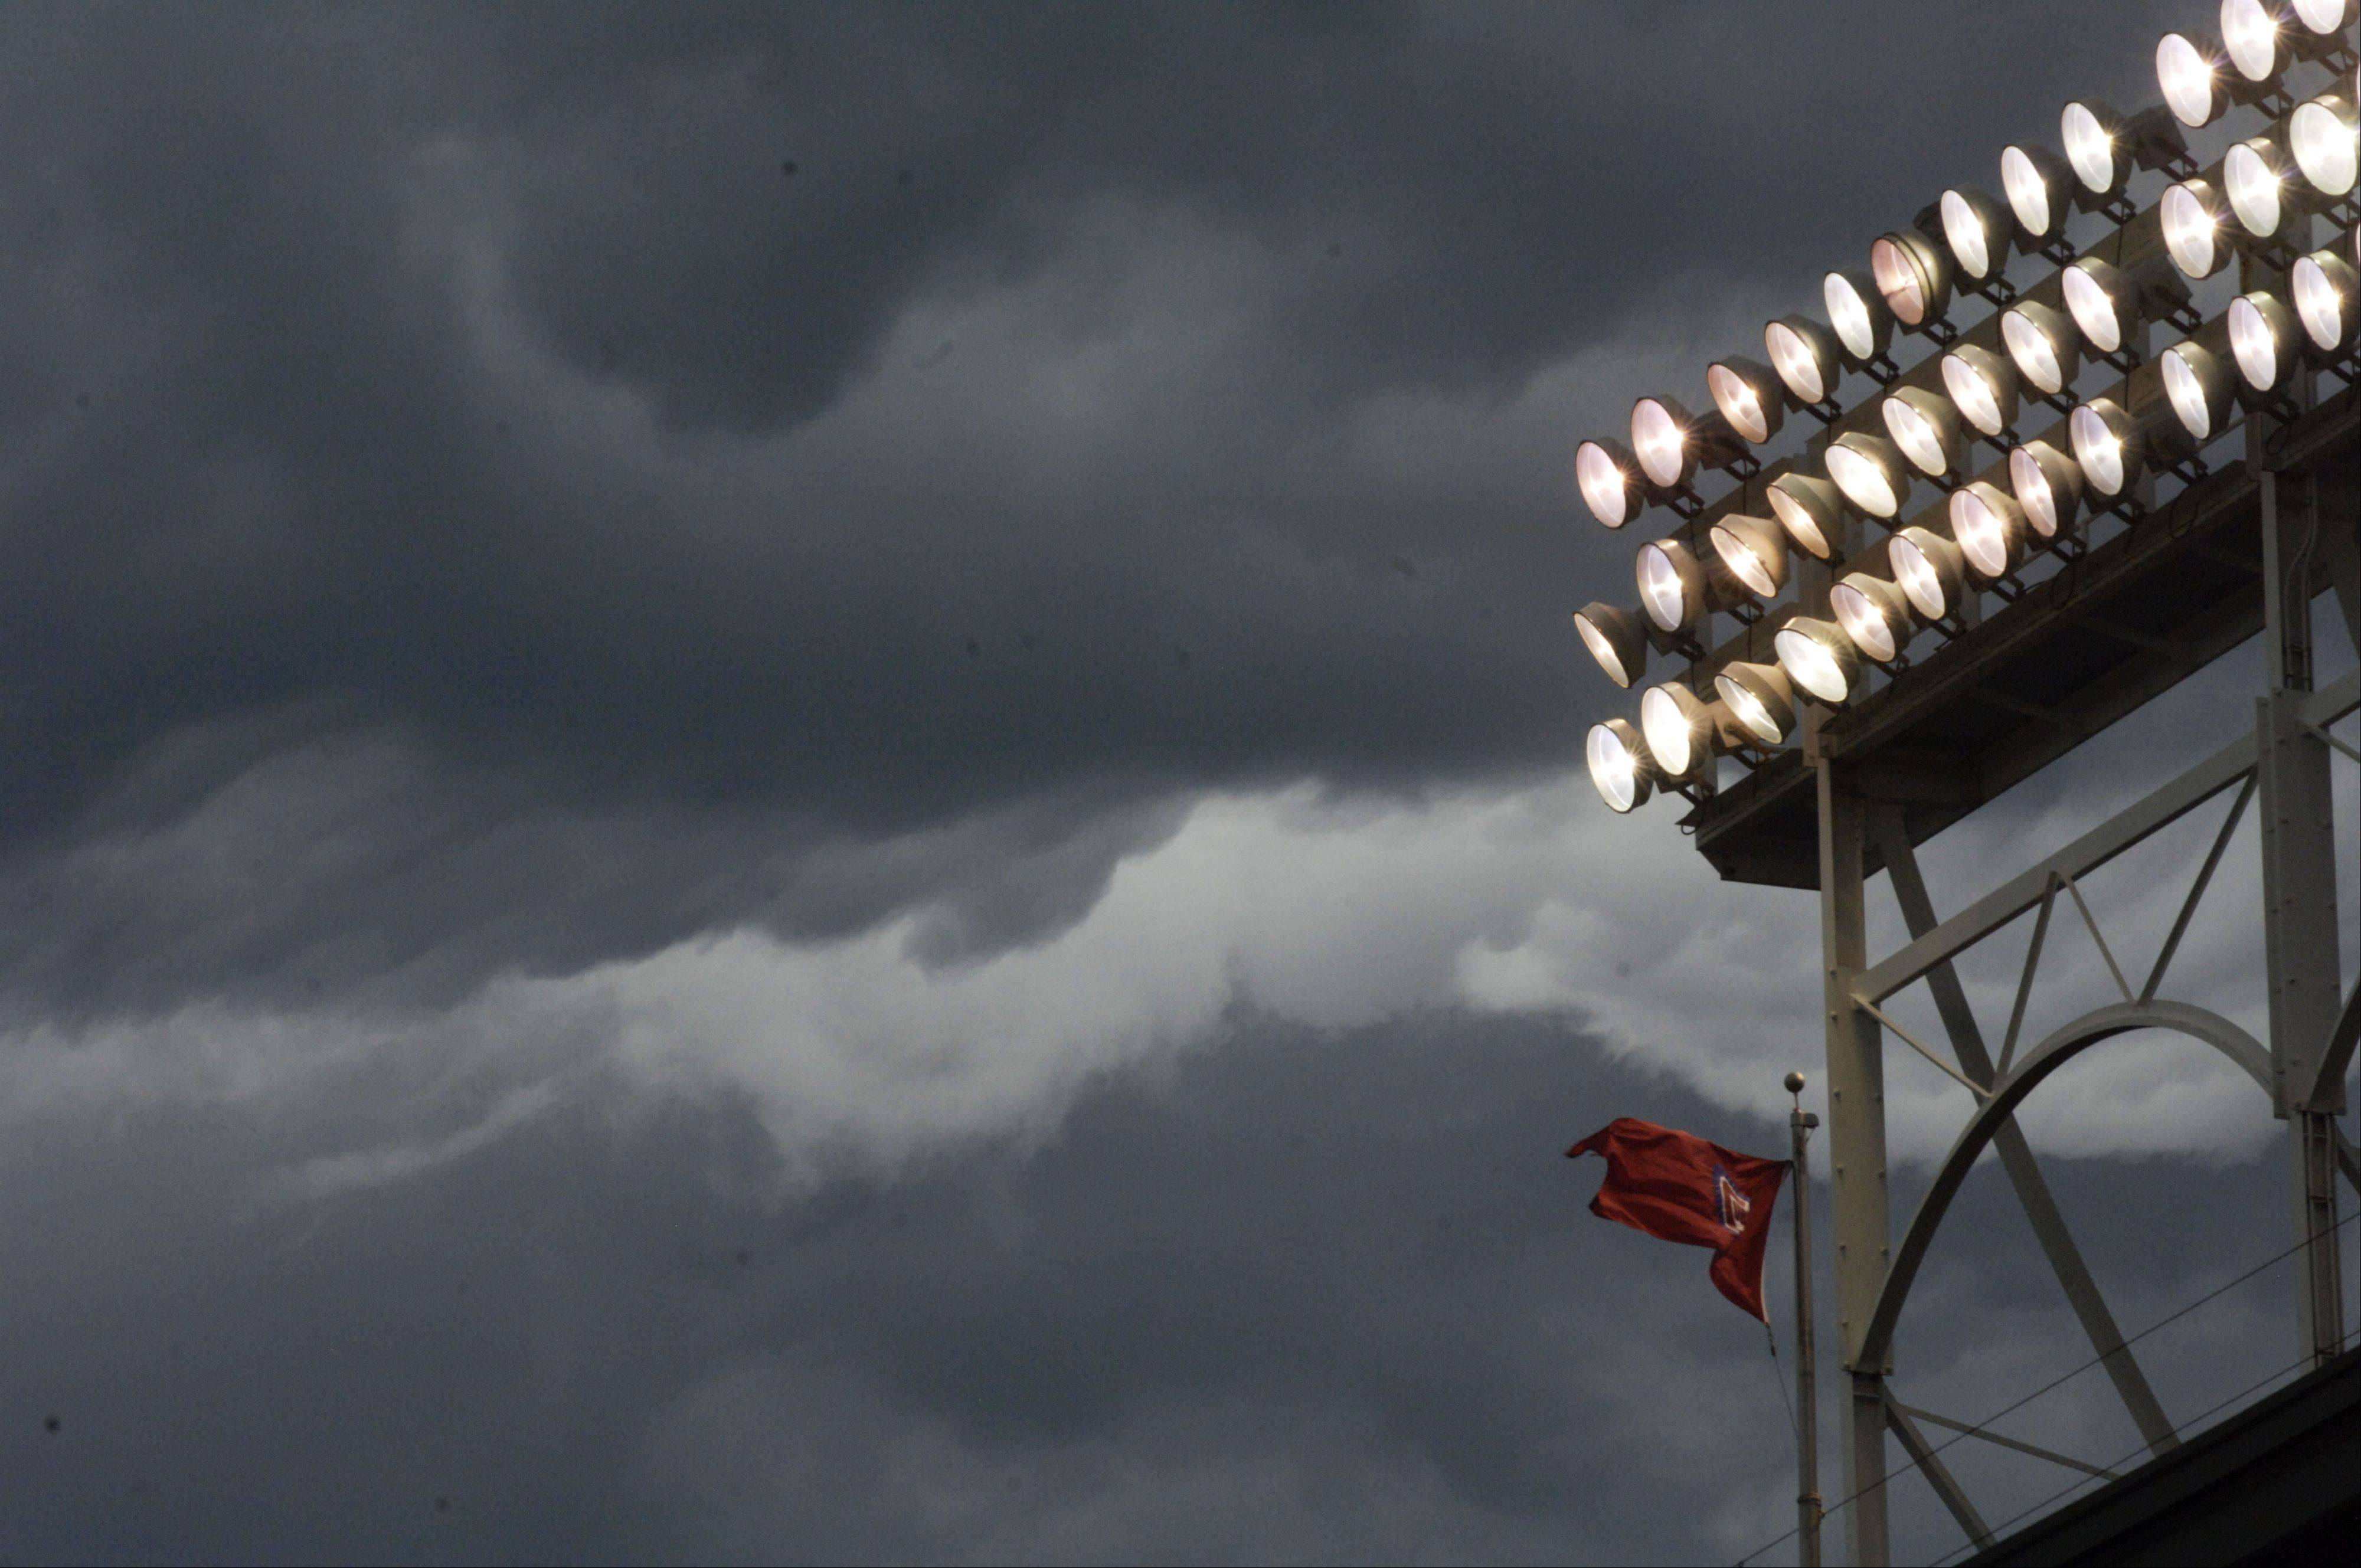 The flags blow in a stiff wind under threatening skies before Friday's game between the Cubs and White Sox at Wrigley Field.